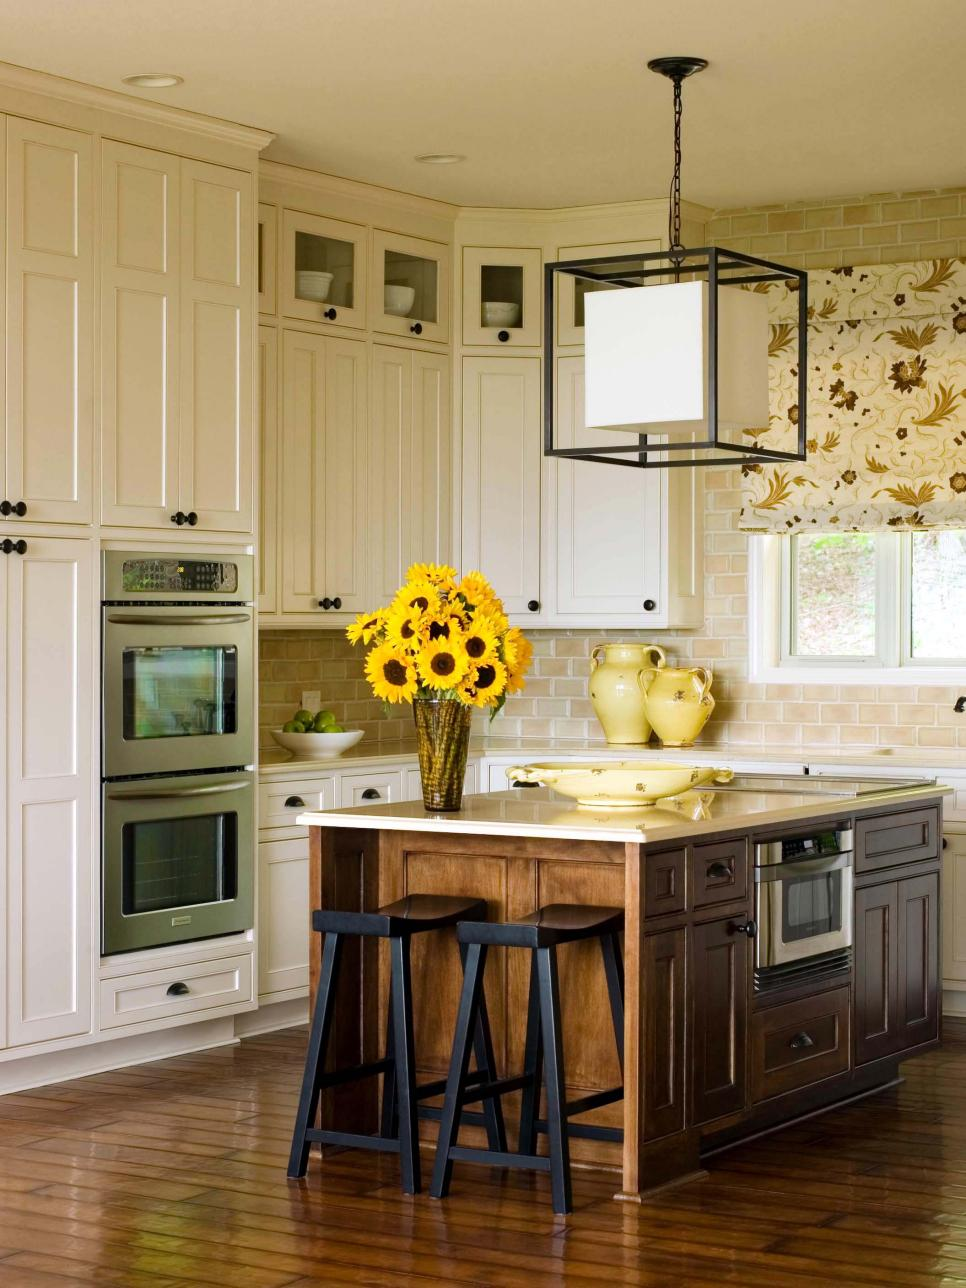 Refacing kitchen cabinets to give a better look